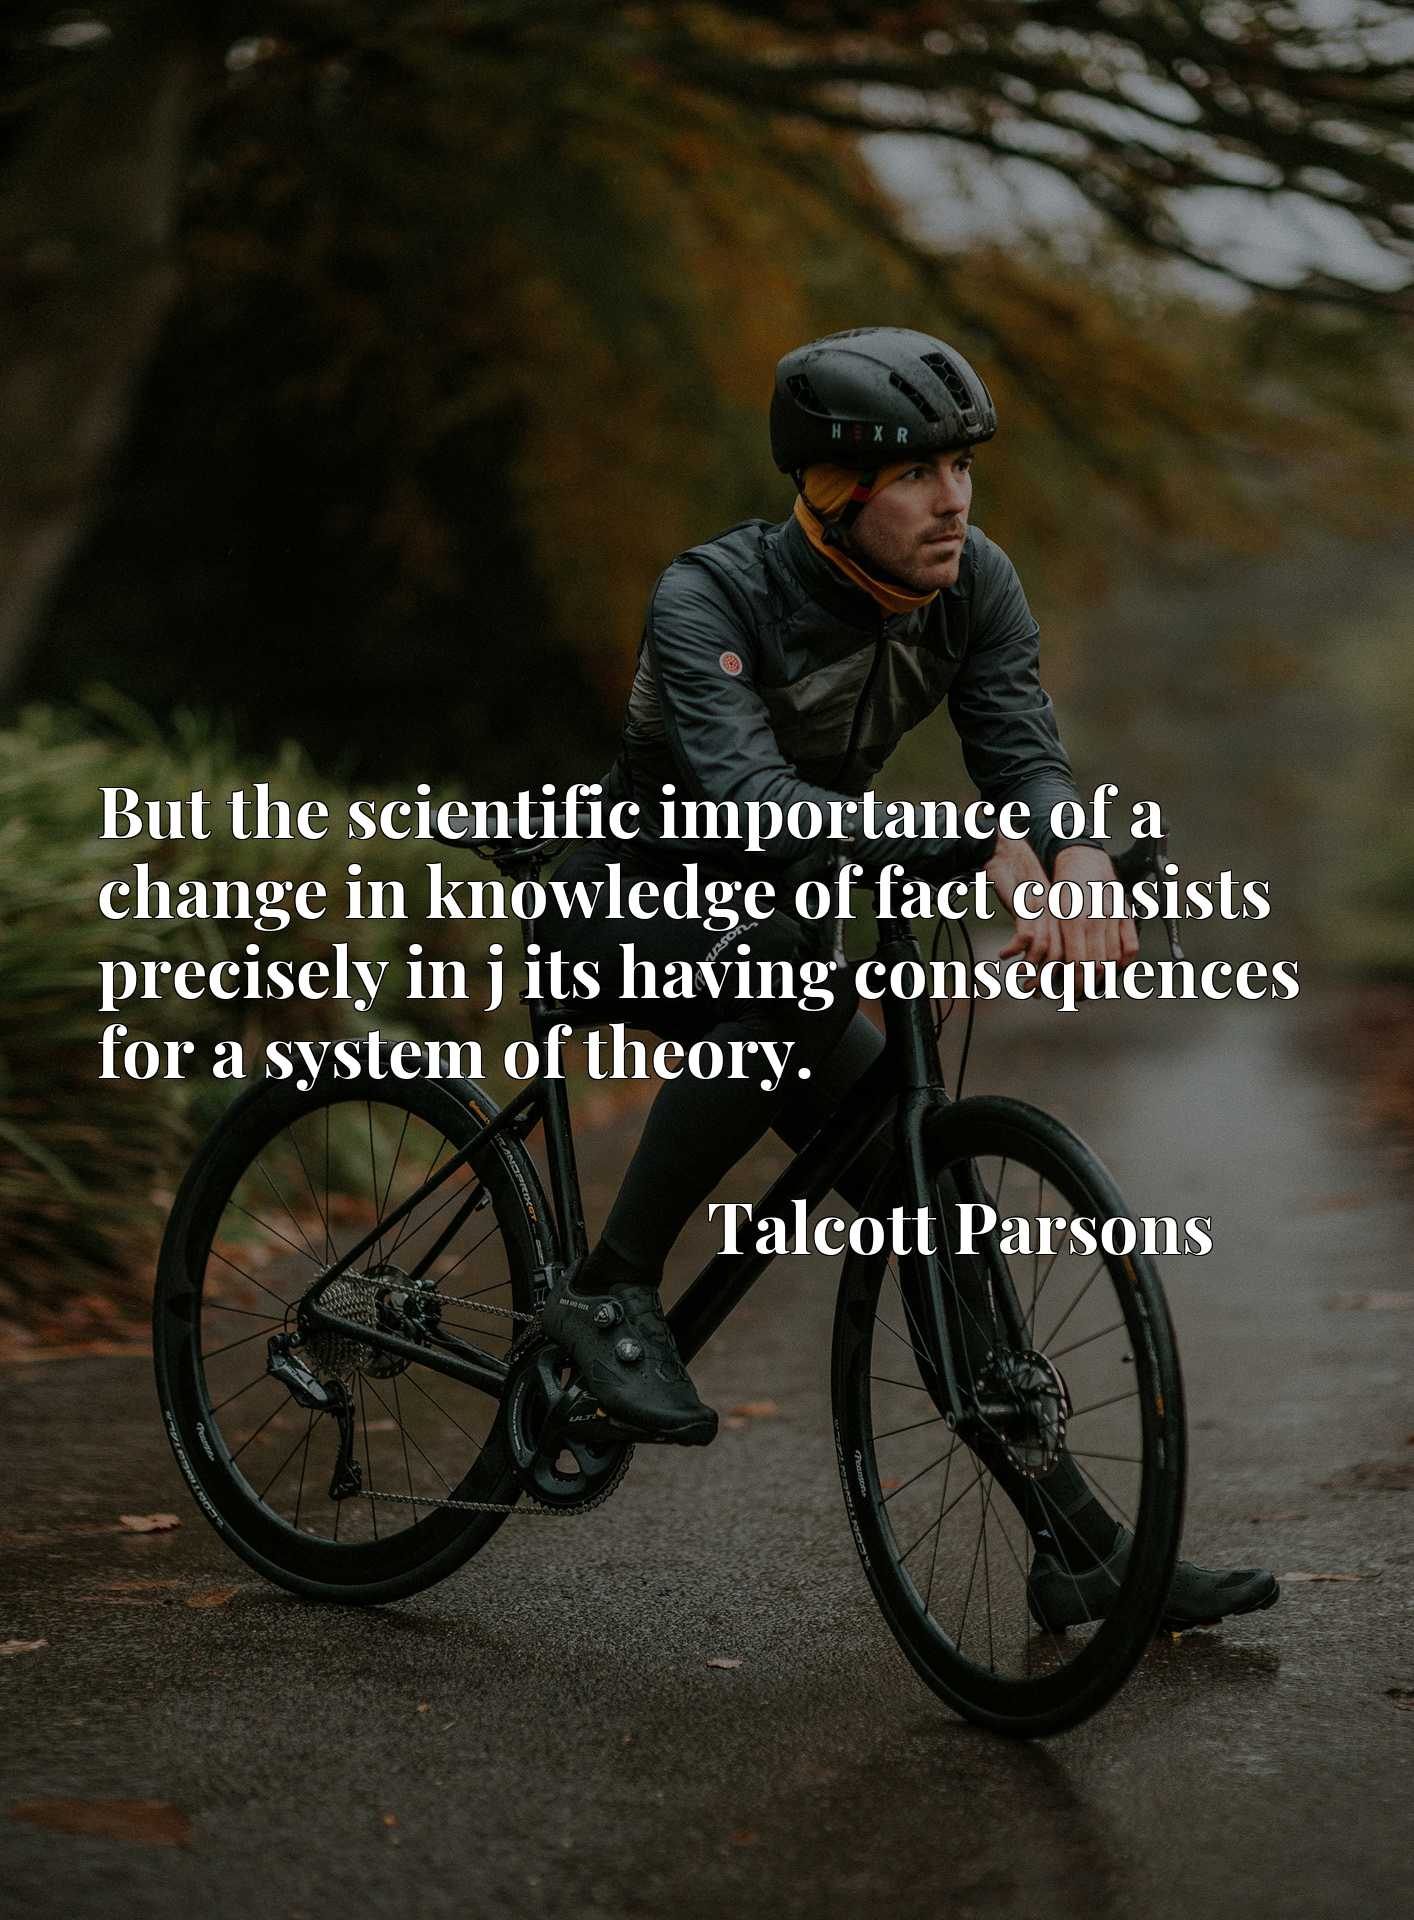 Quote Picture :But the scientific importance of a change in knowledge of fact consists precisely in j its having consequences for a system of theory.